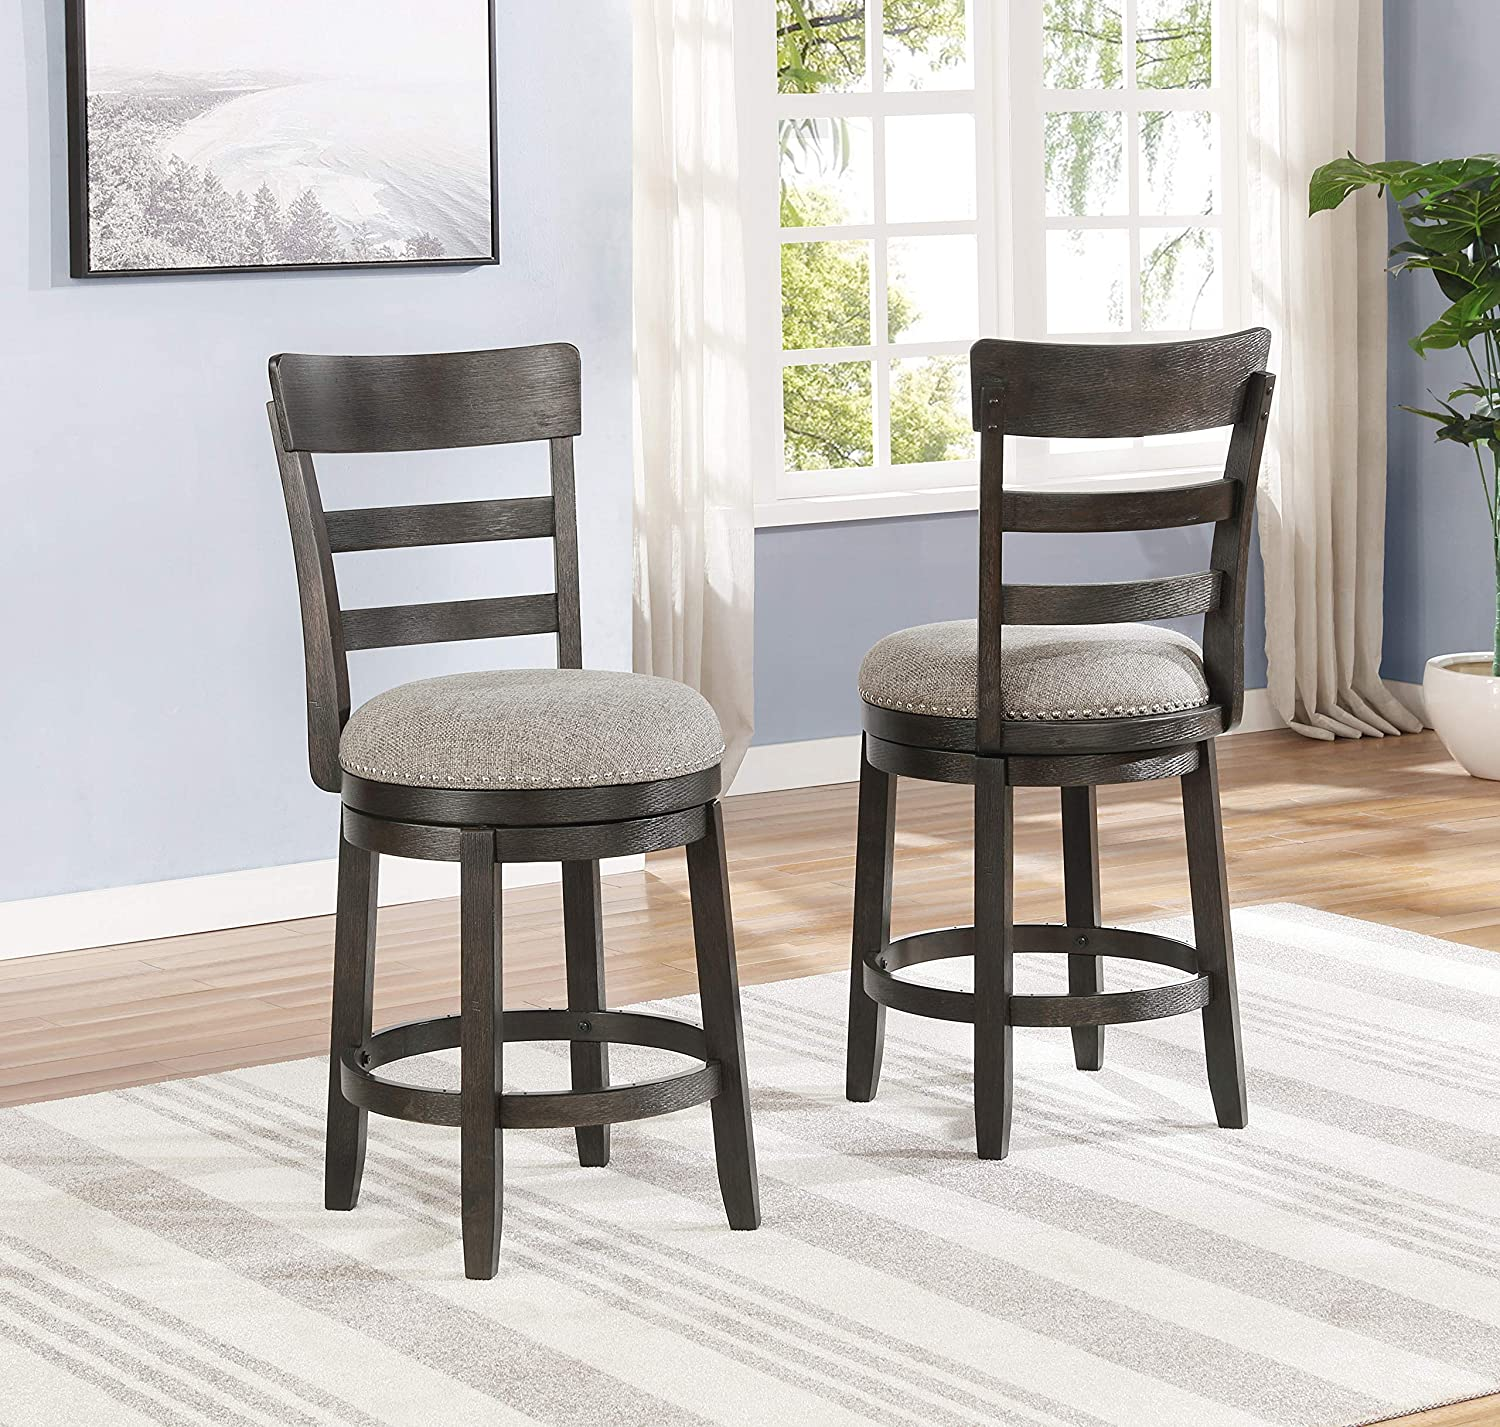 Roundhill Furniture Kessel Brown Brushed Wood Swivel Counter Height Stools, Set of 2